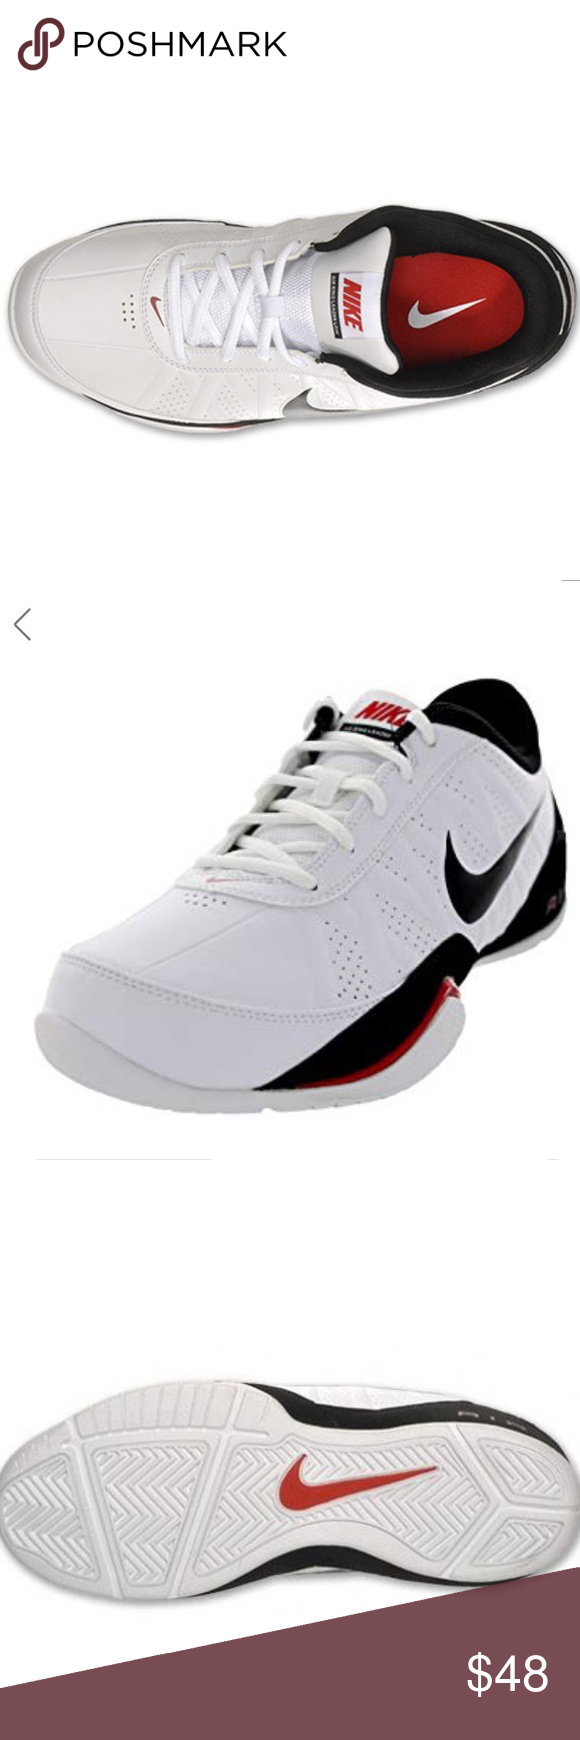 NIB Nike Air Ring Leader Low Basketball Shoes Nike Air Ring Leader Low is a  supportive - low-cut basketball shoe that s built for well cushioned speed  ... 9870d962d